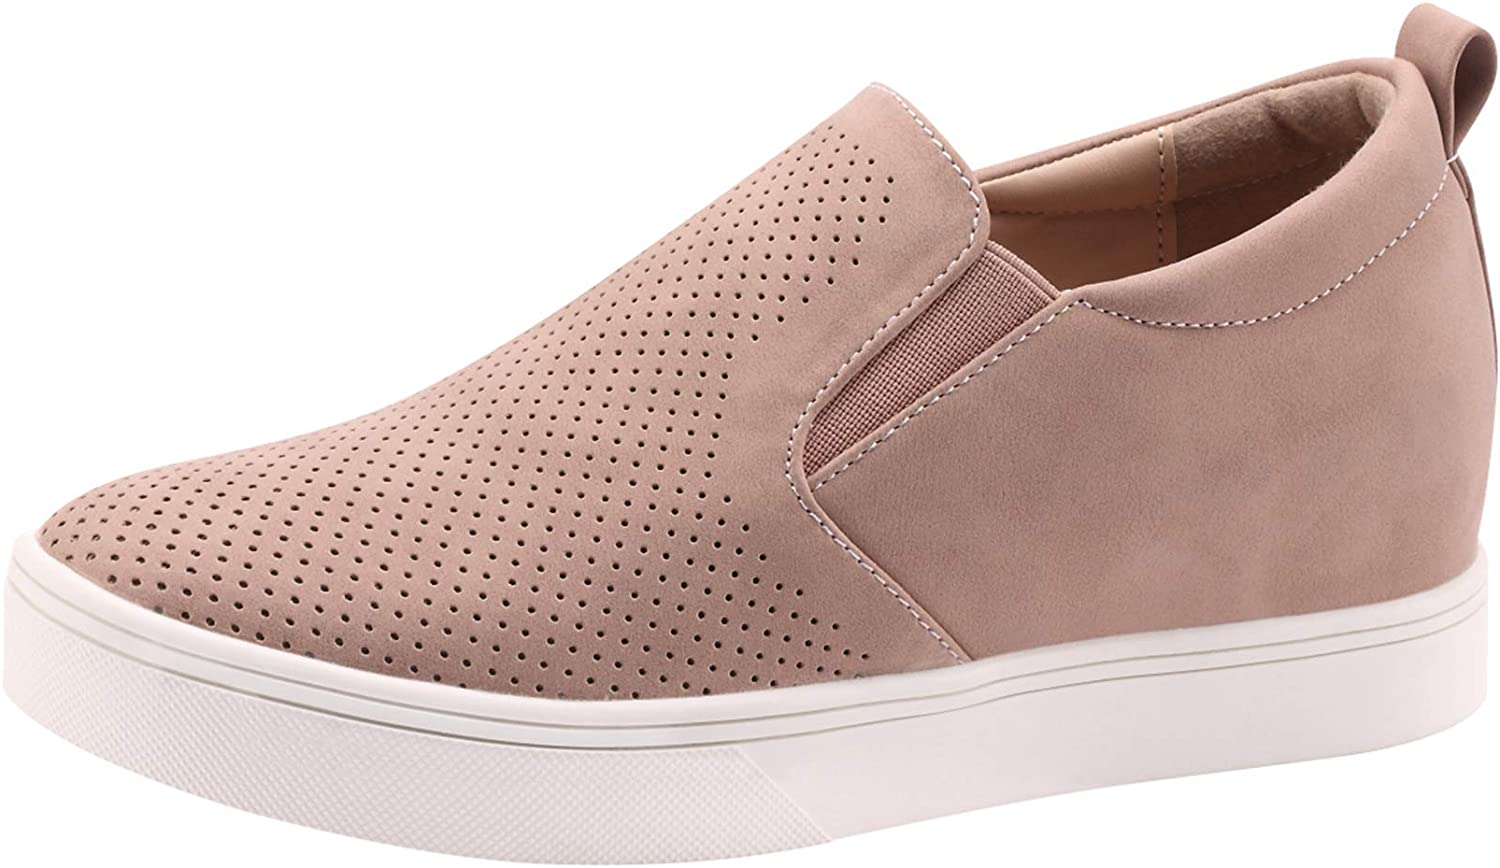 Sofree Women's Slip On Wedge Platform Sneakers